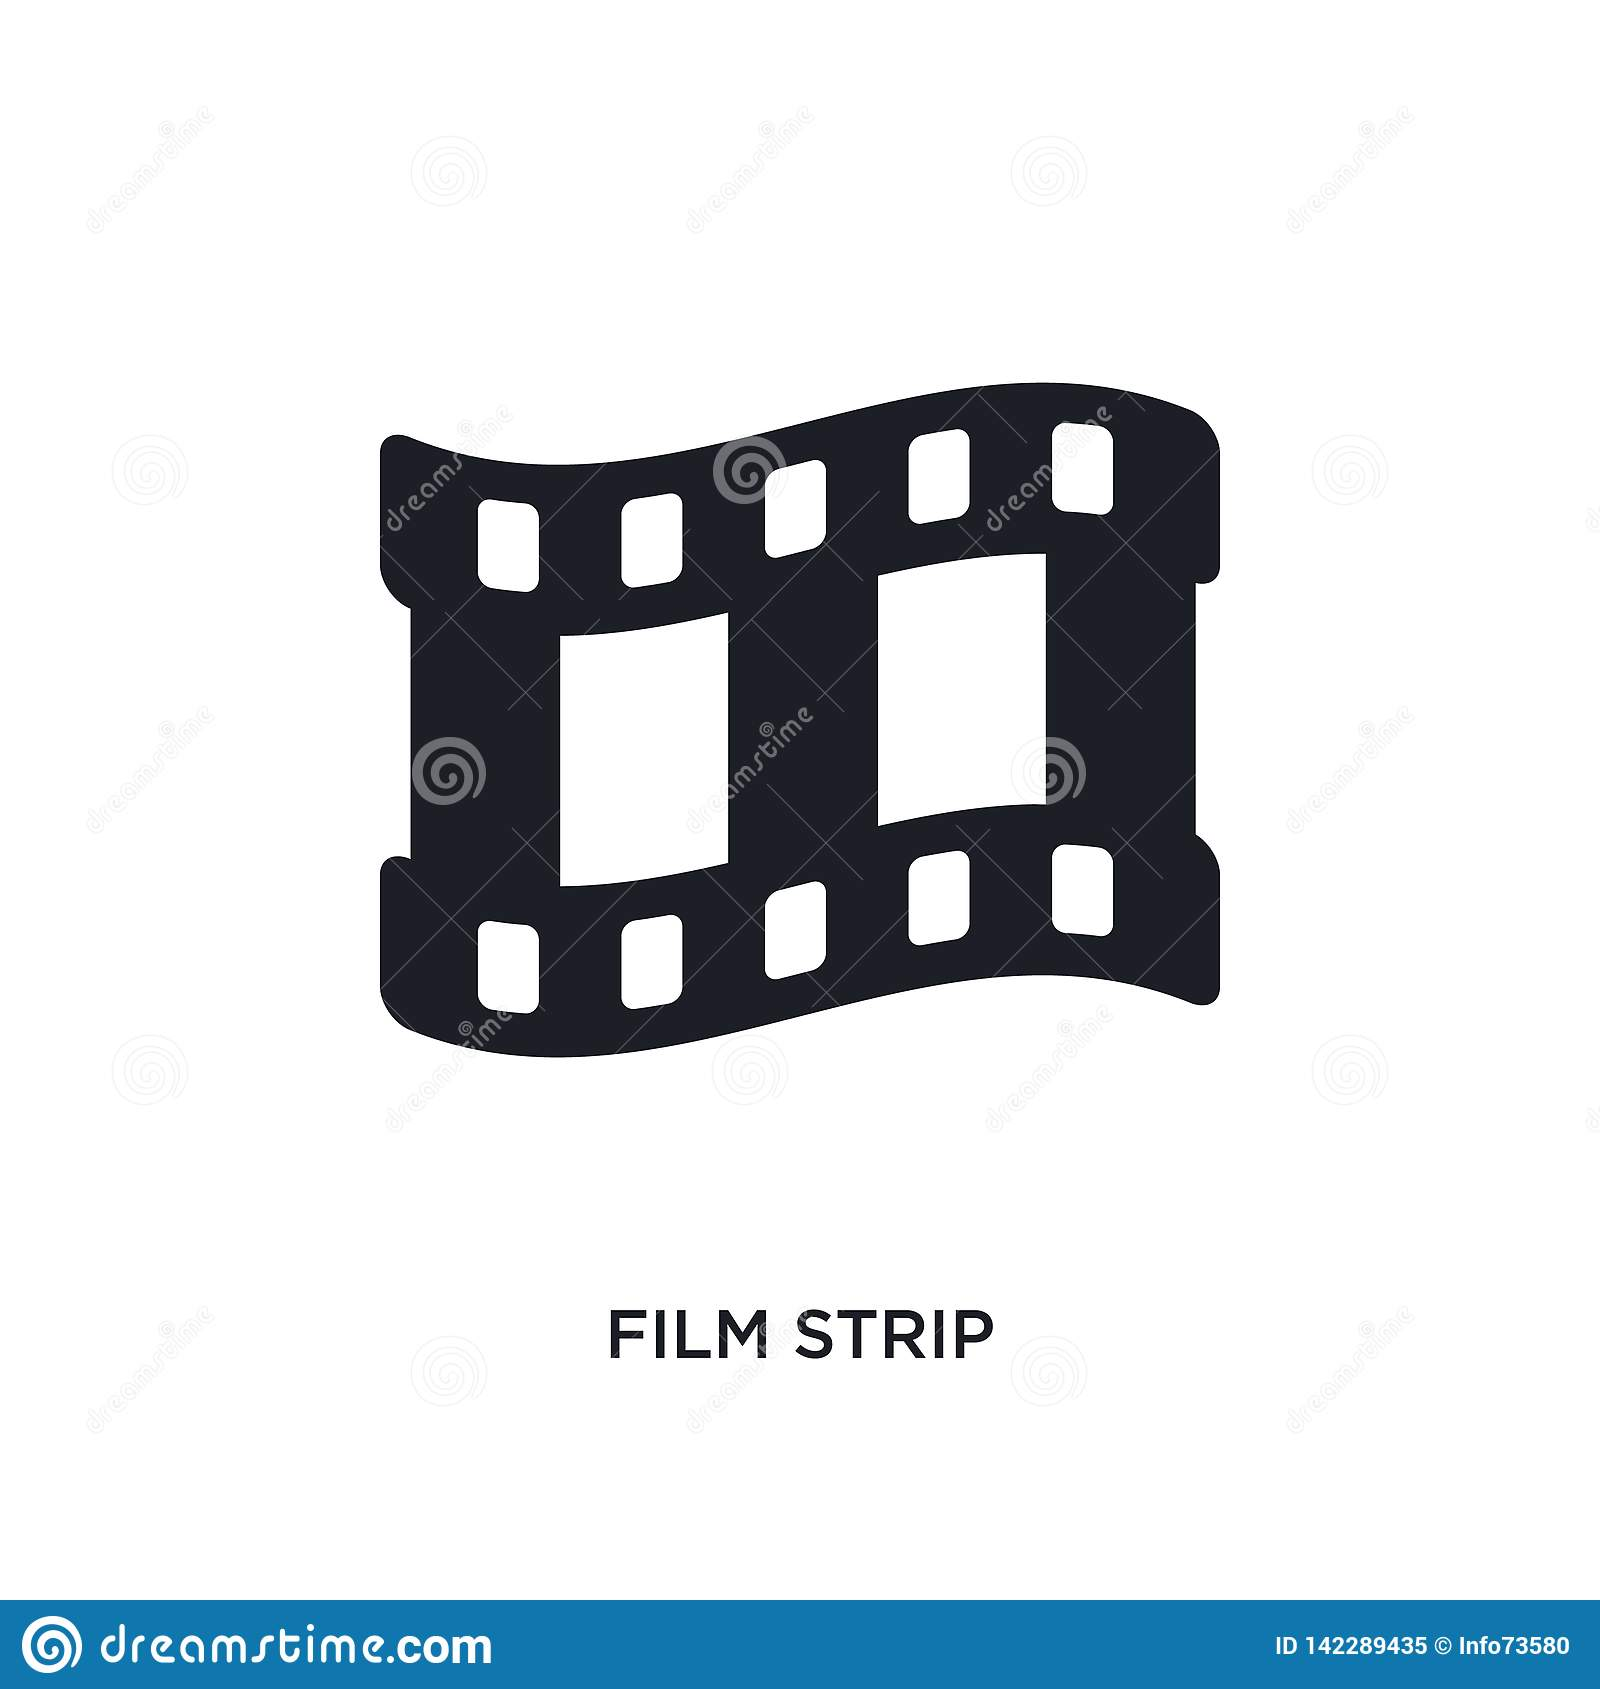 film strip isolated icon. simple element illustration from electronic stuff fill concept icons. film strip editable logo sign